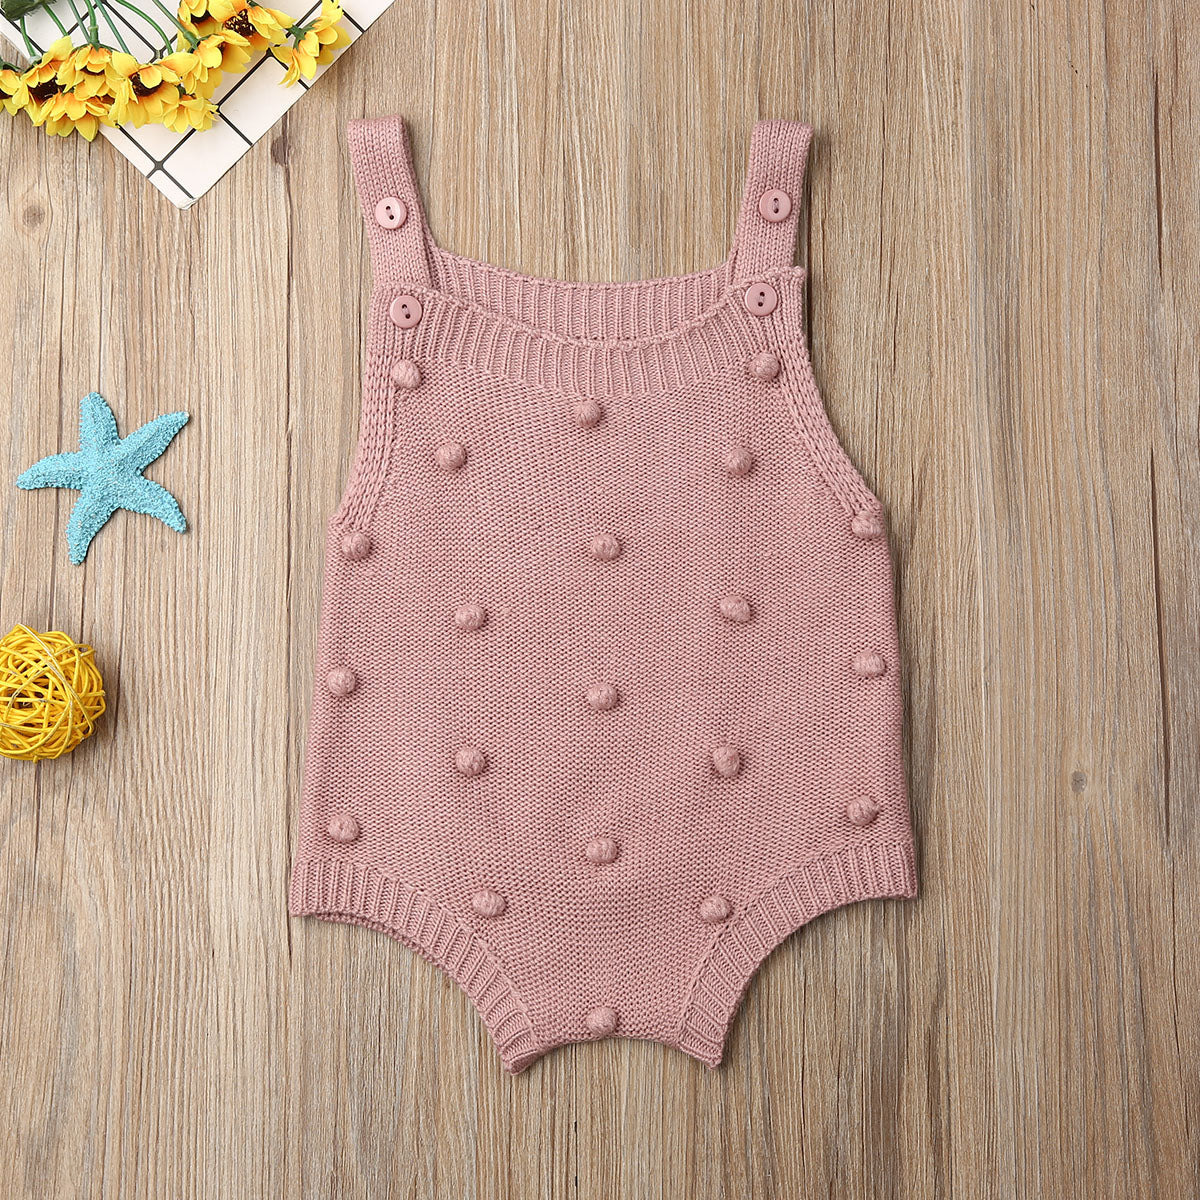 Spring Newborn Baby Clothing Baby Boy Girl Knitted Rompers Solid Jumpsuit Ruffle Sleeveless One-Piece Clothes